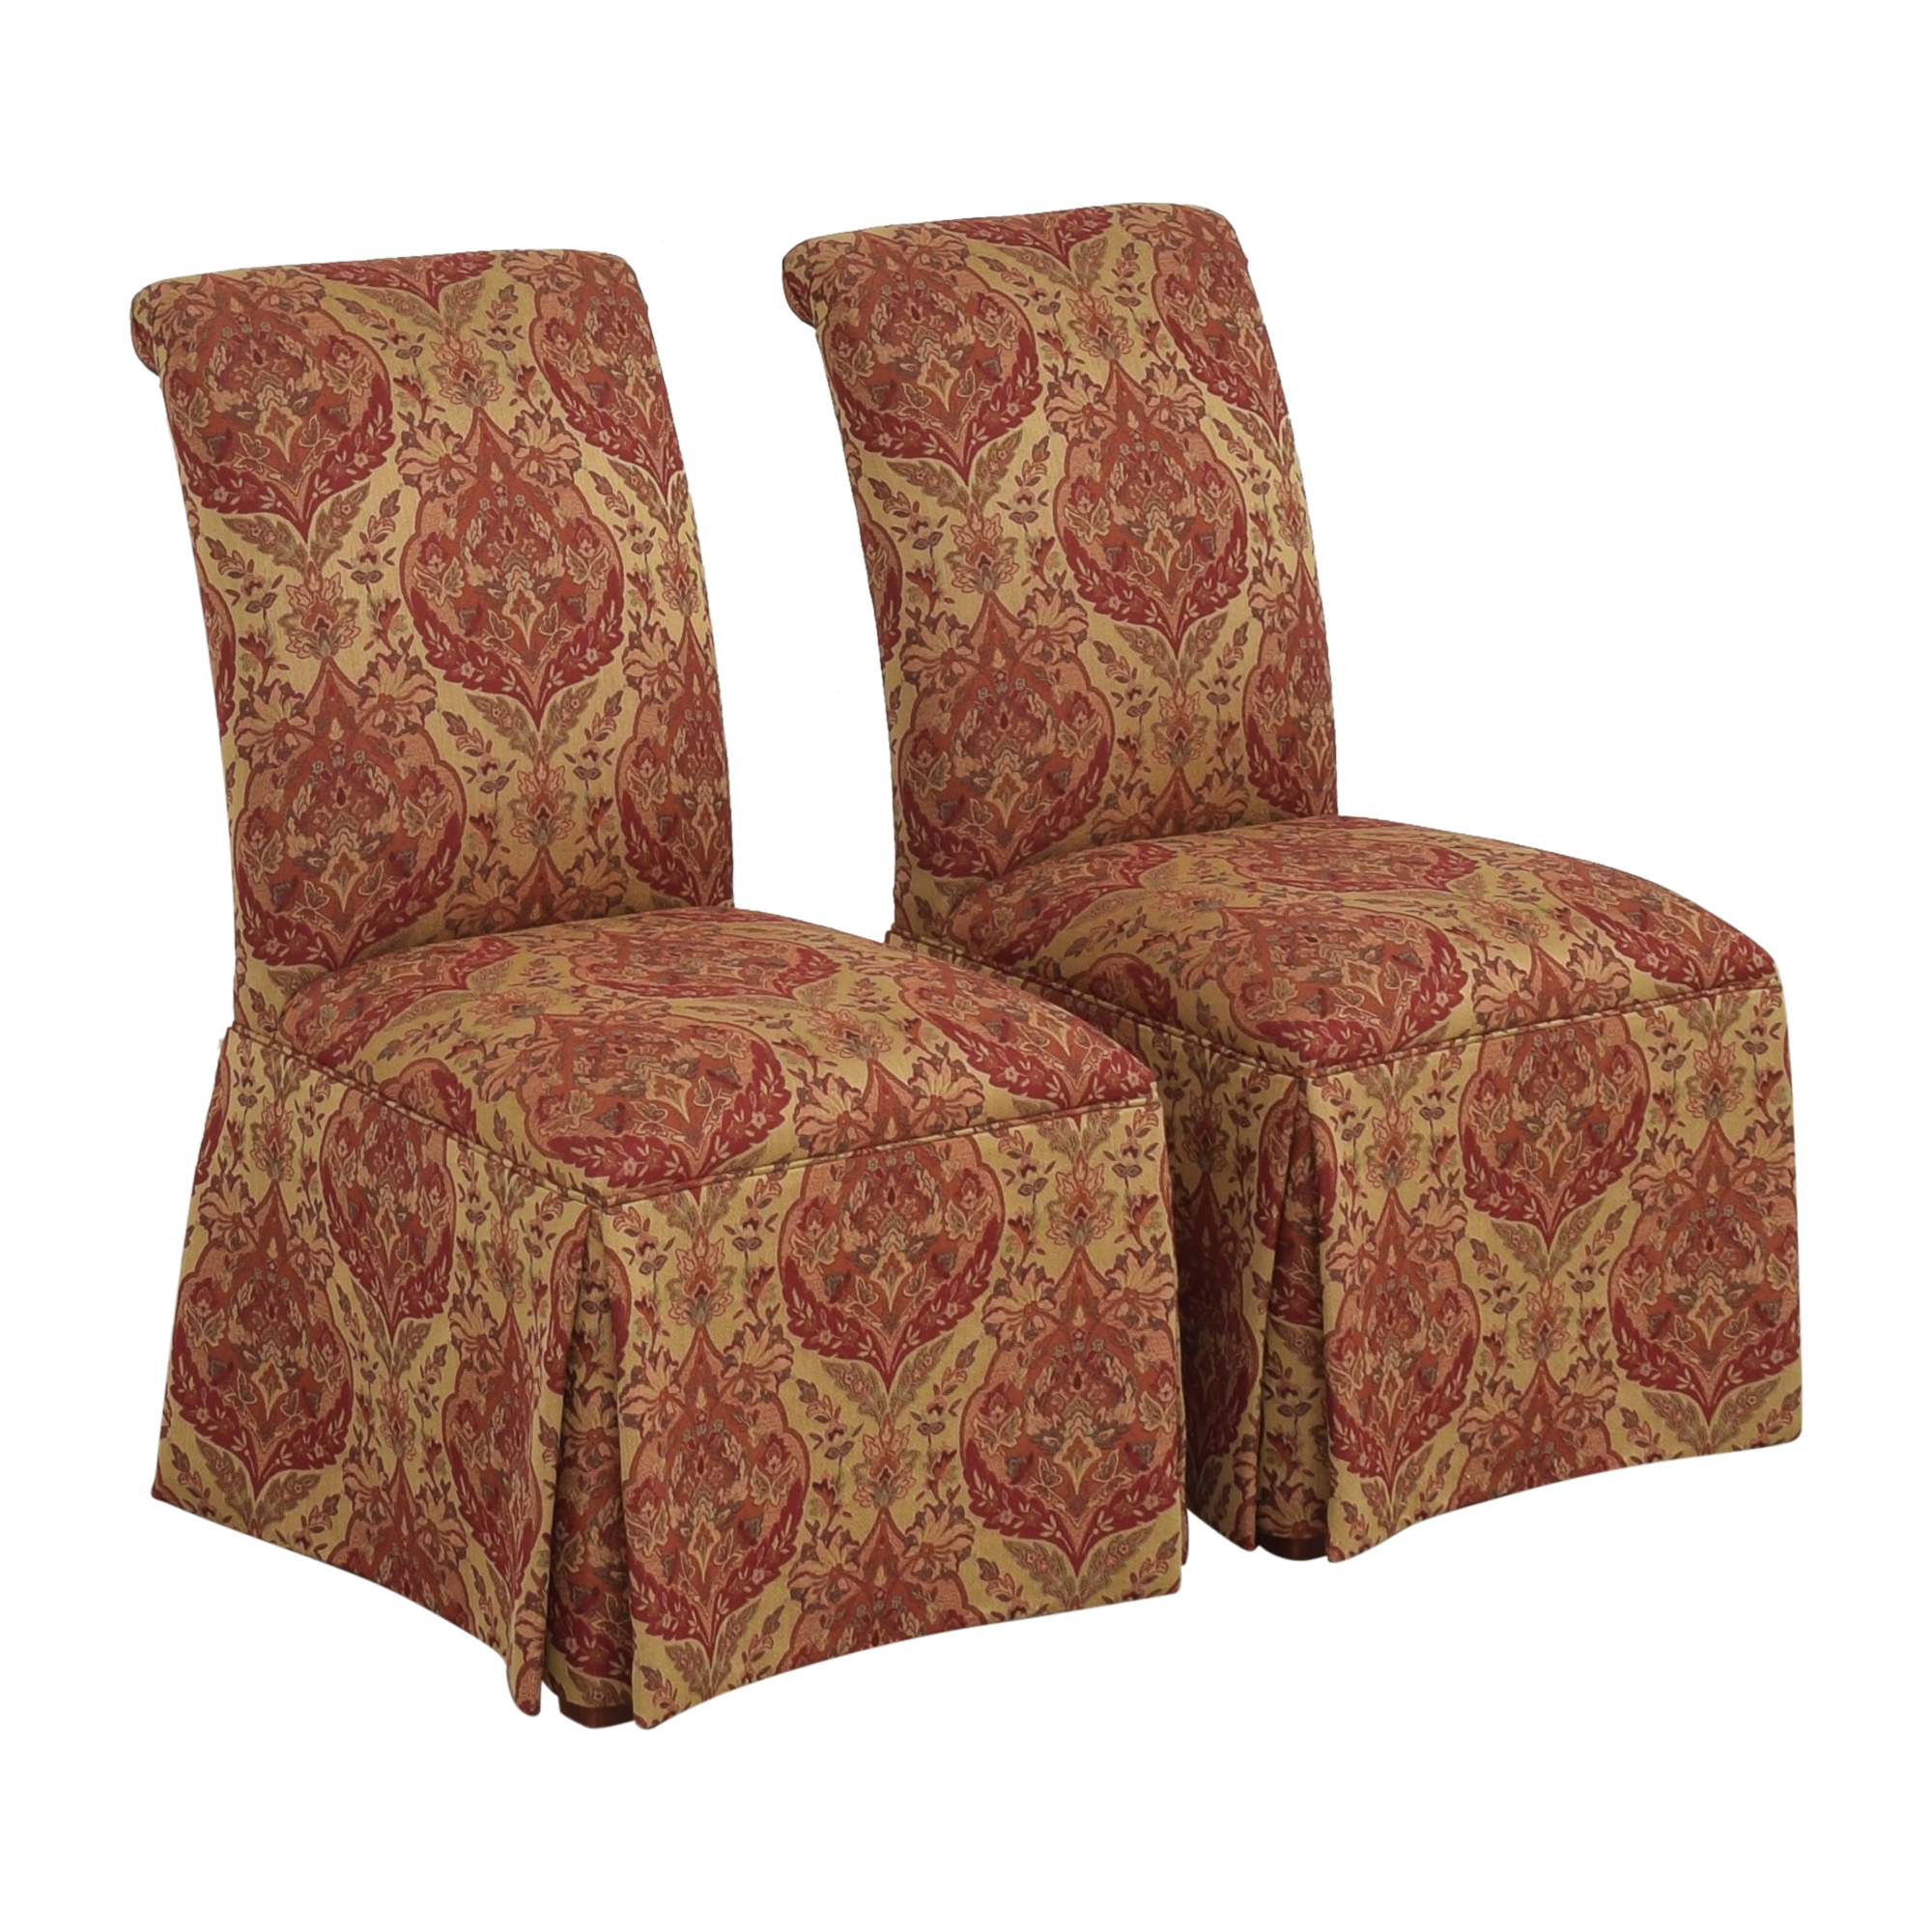 Ethan Allen Ethan Allen Olivia Skirted Side Chairs